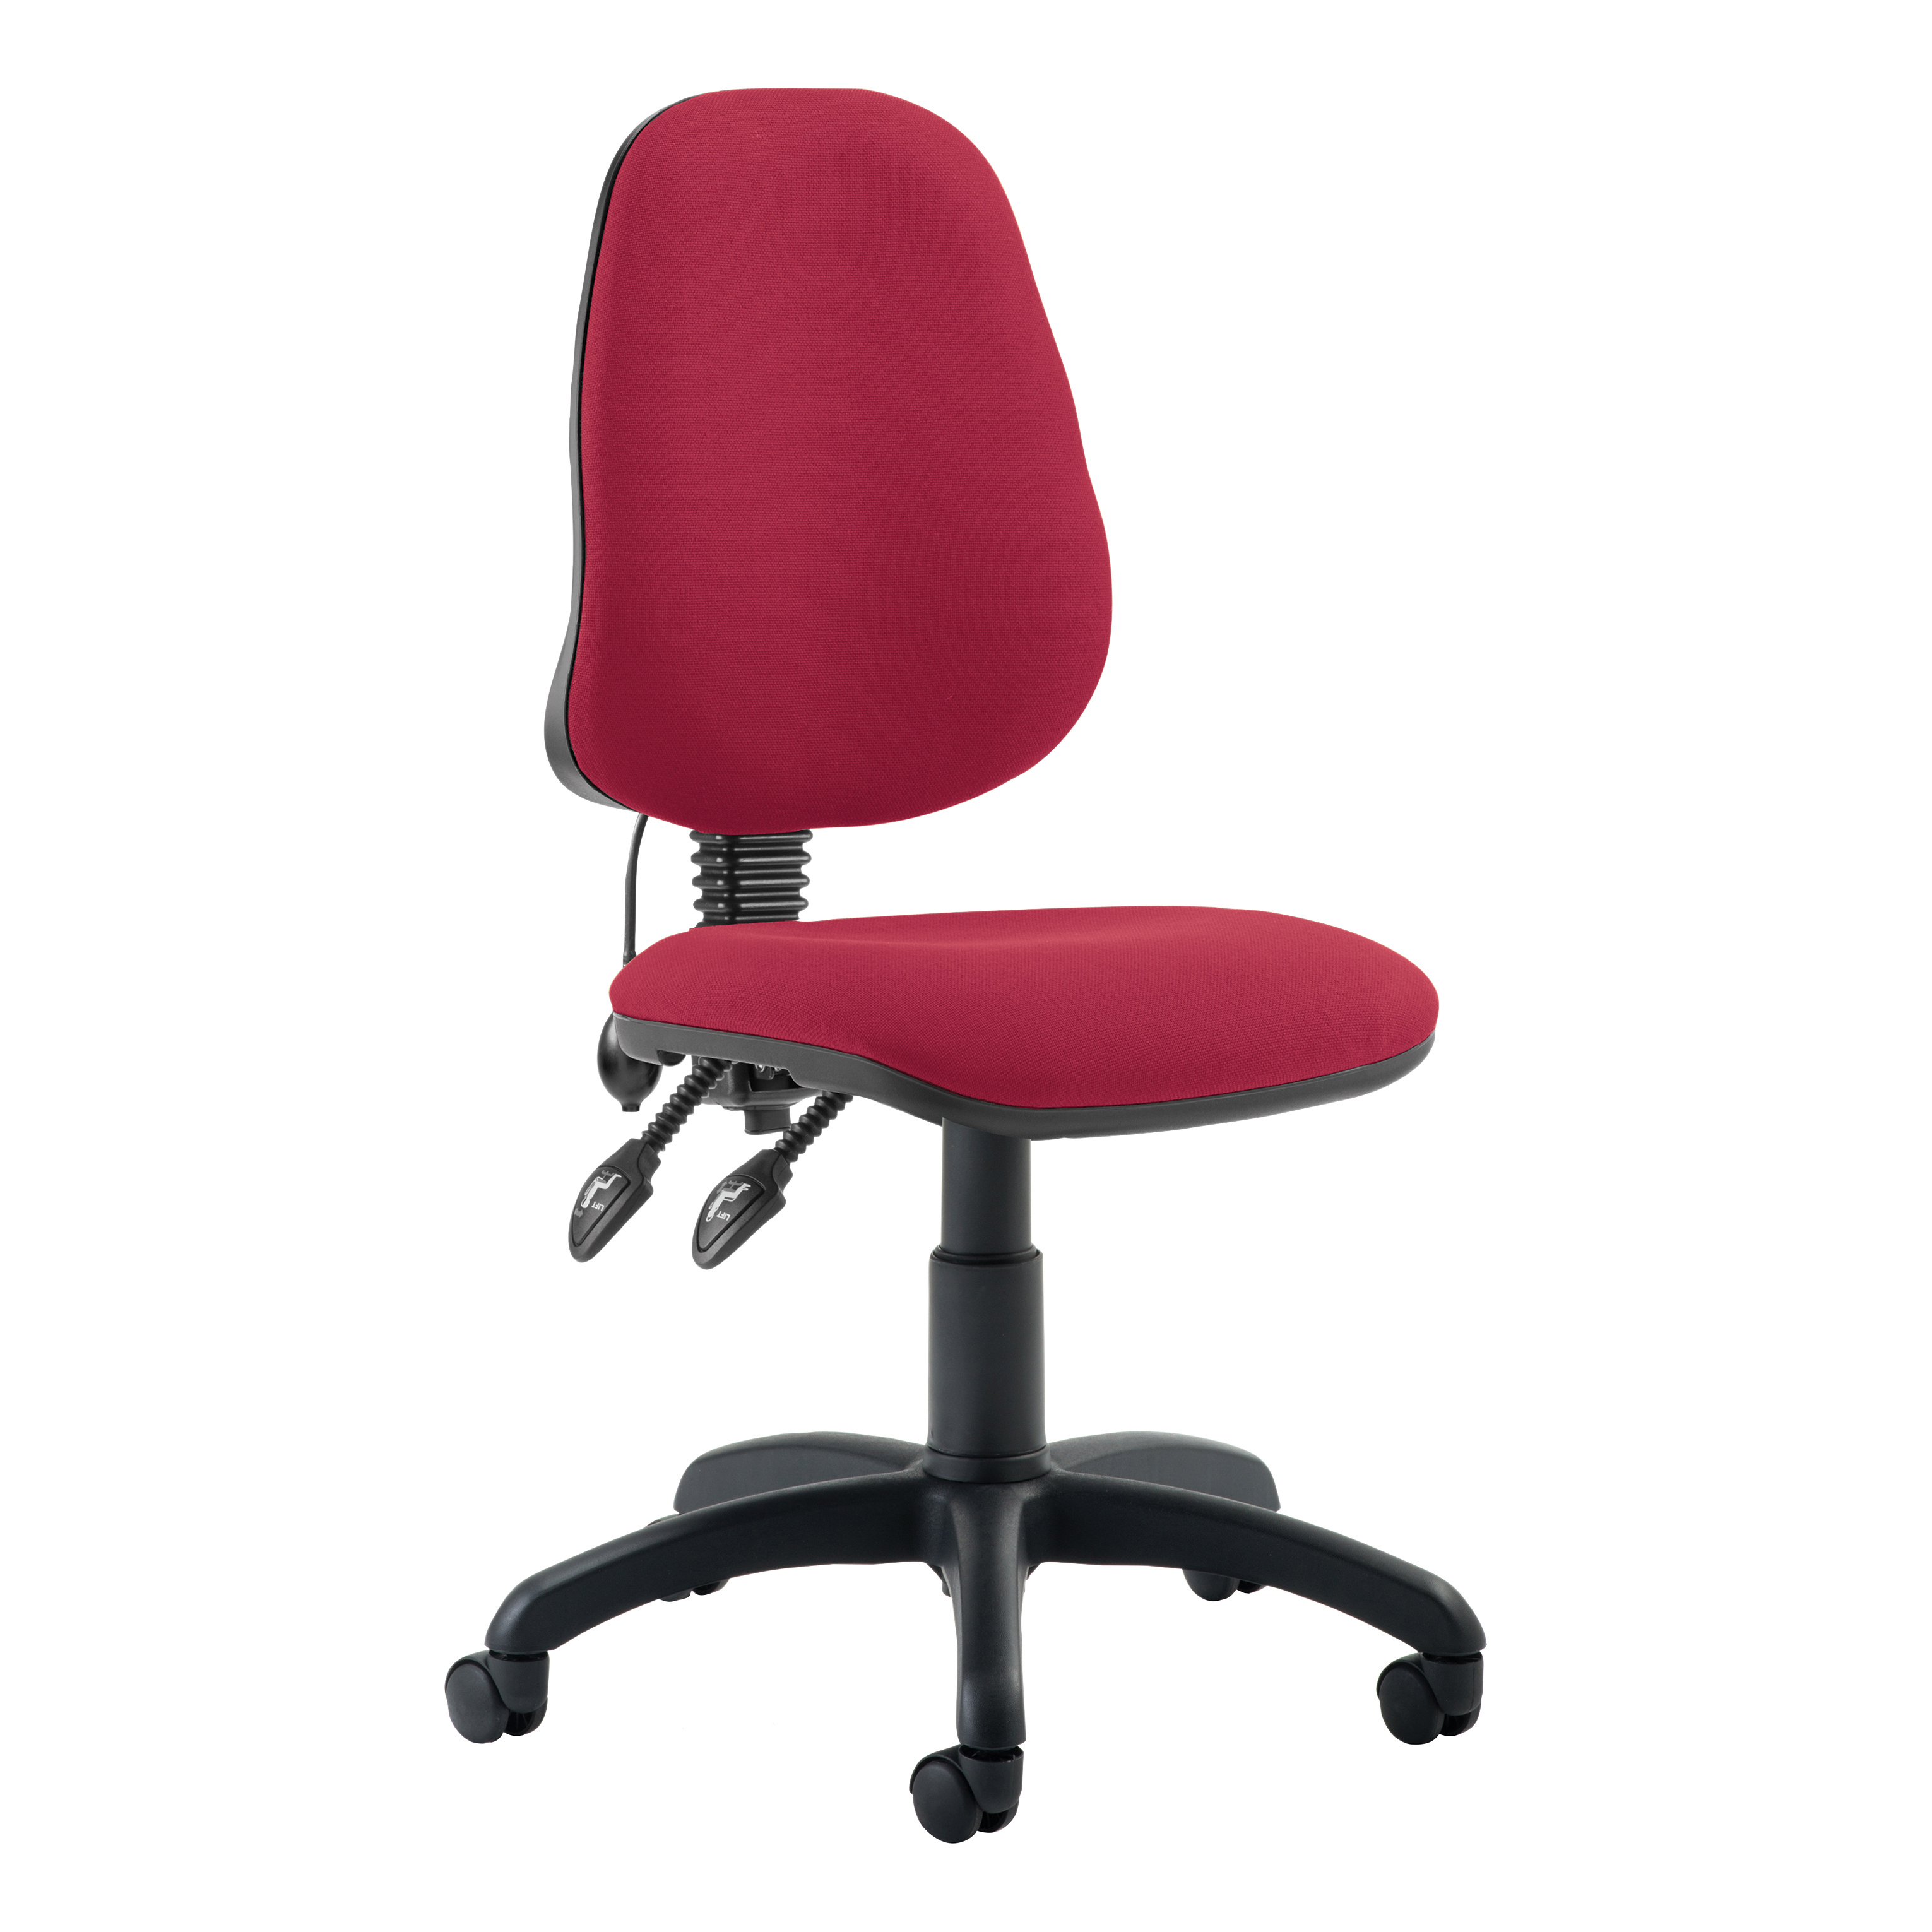 Trexus Lumbar High Back Permanent Contact Chair Red 480x450x490-590mm Ref LM00004